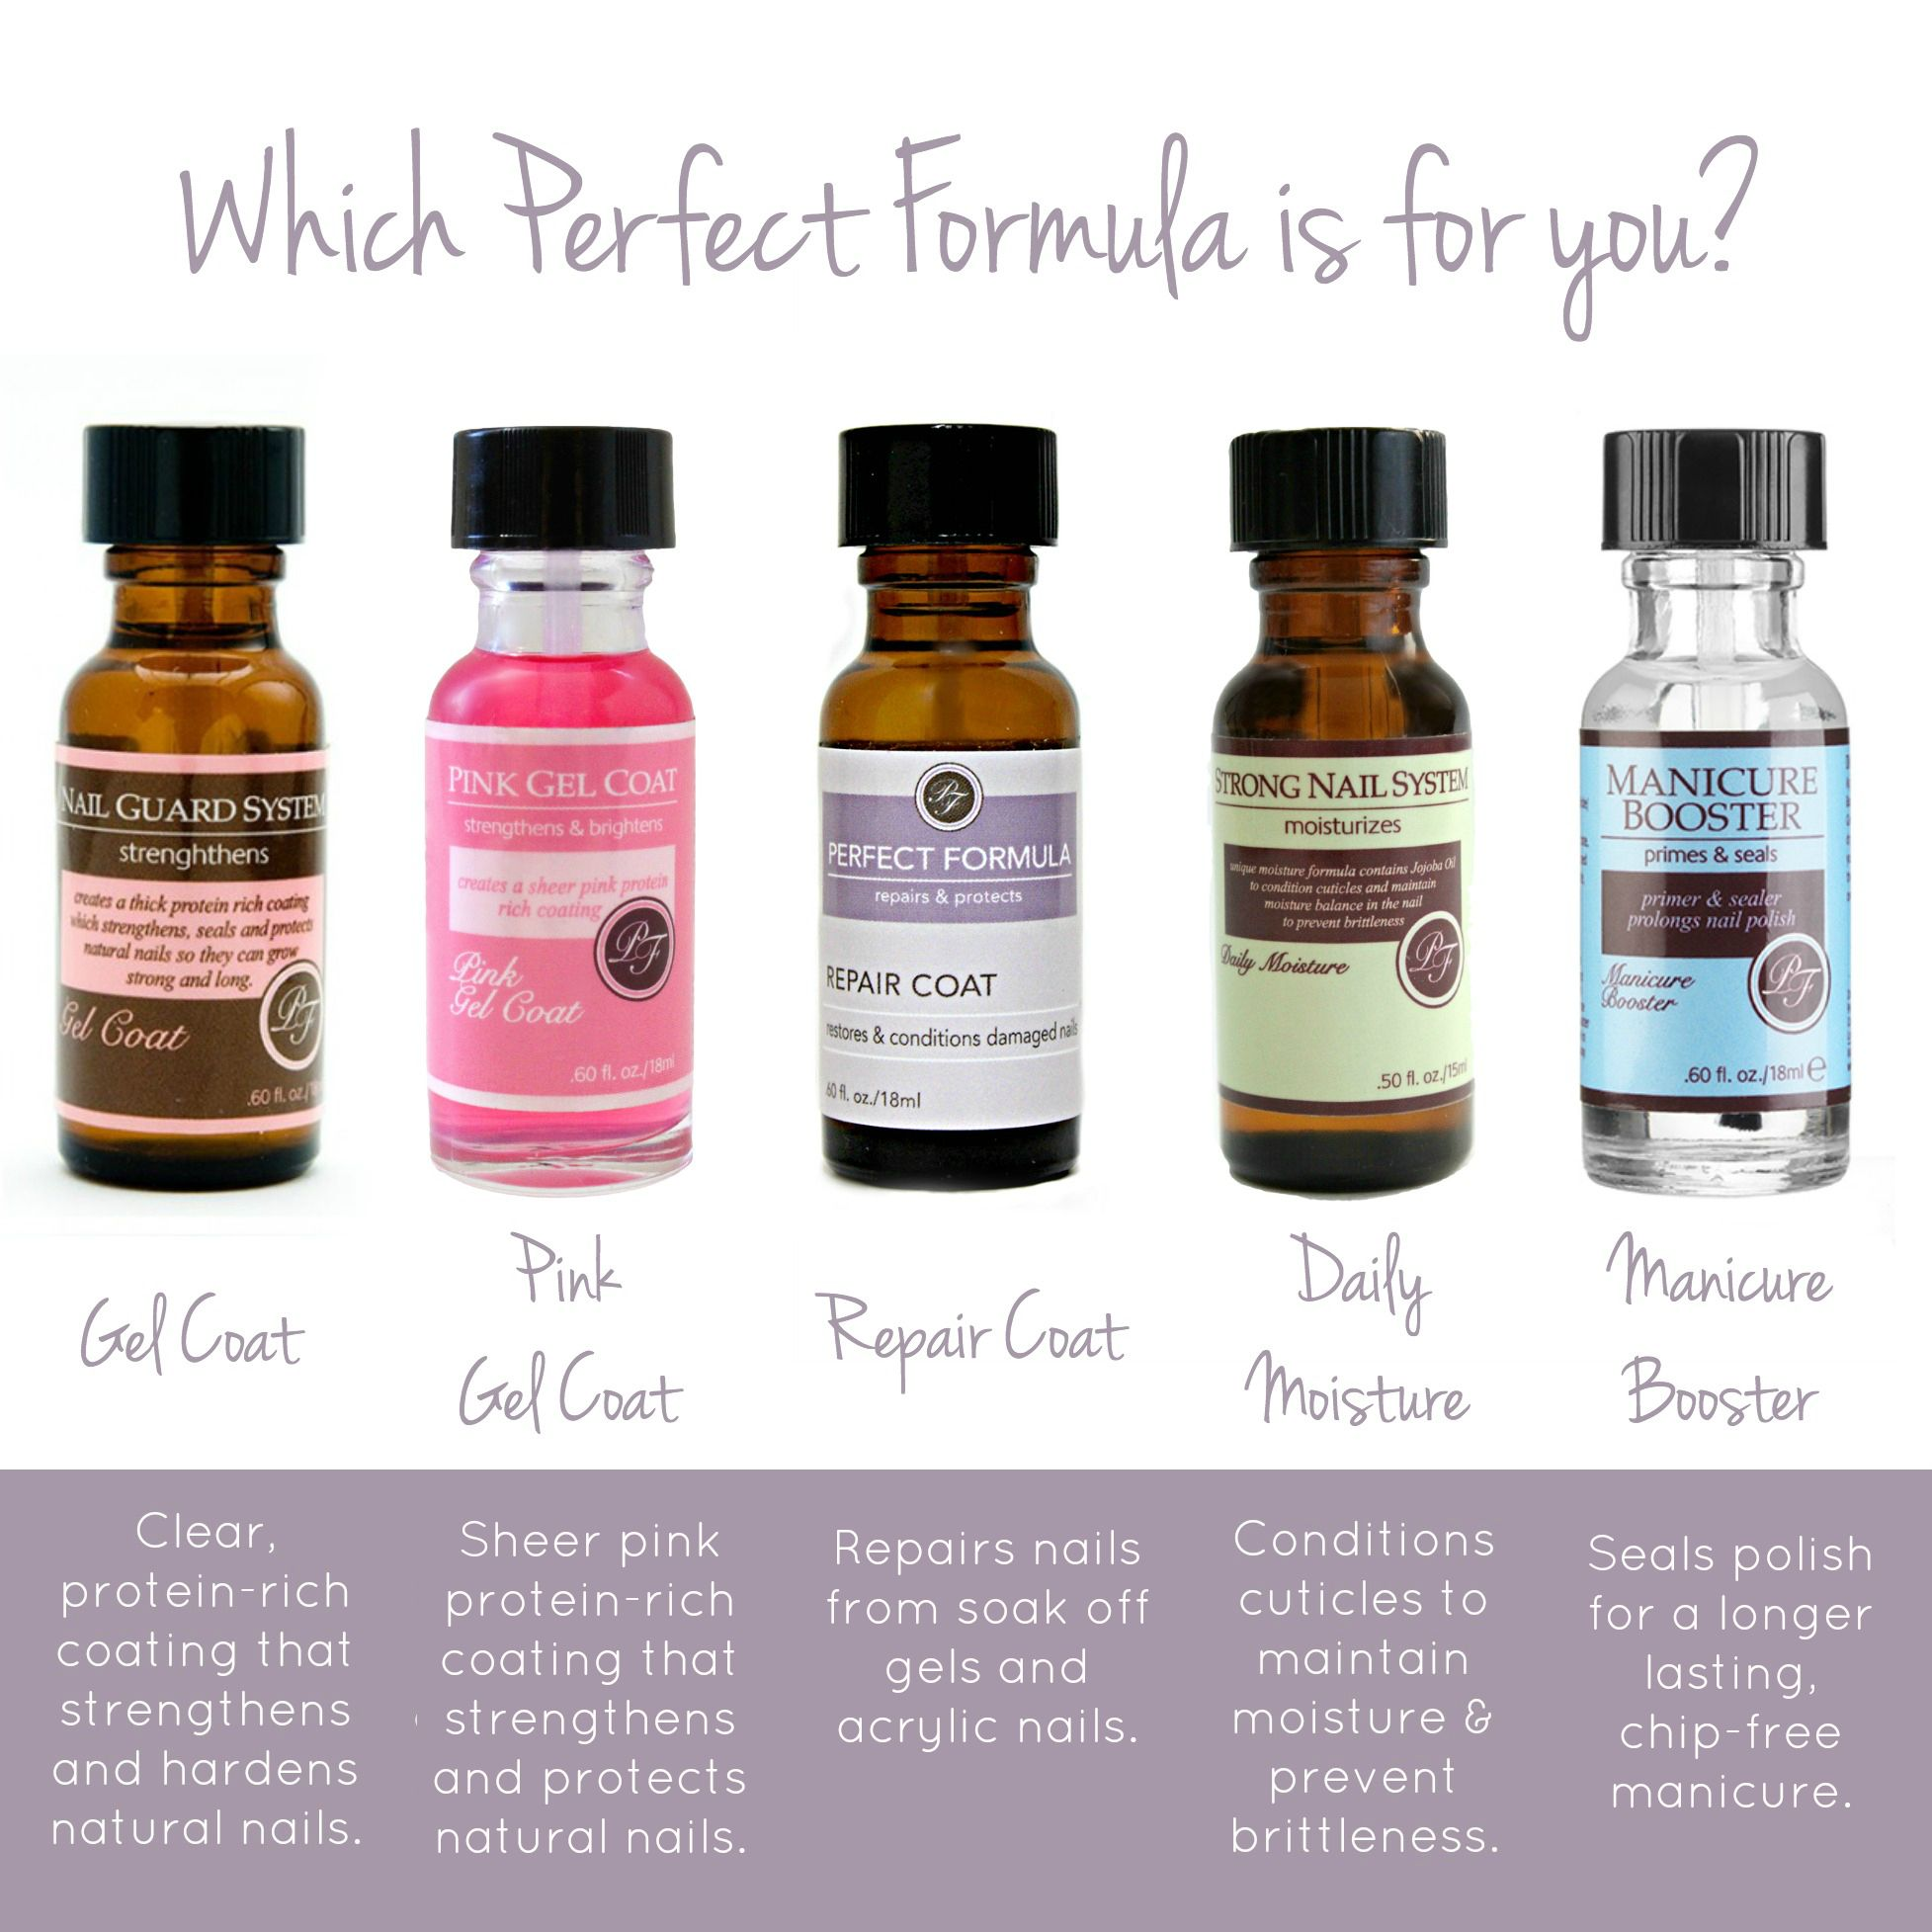 Find the right Perfect Formula to help get longer, stronger, healthier, more beautiful natural nails.